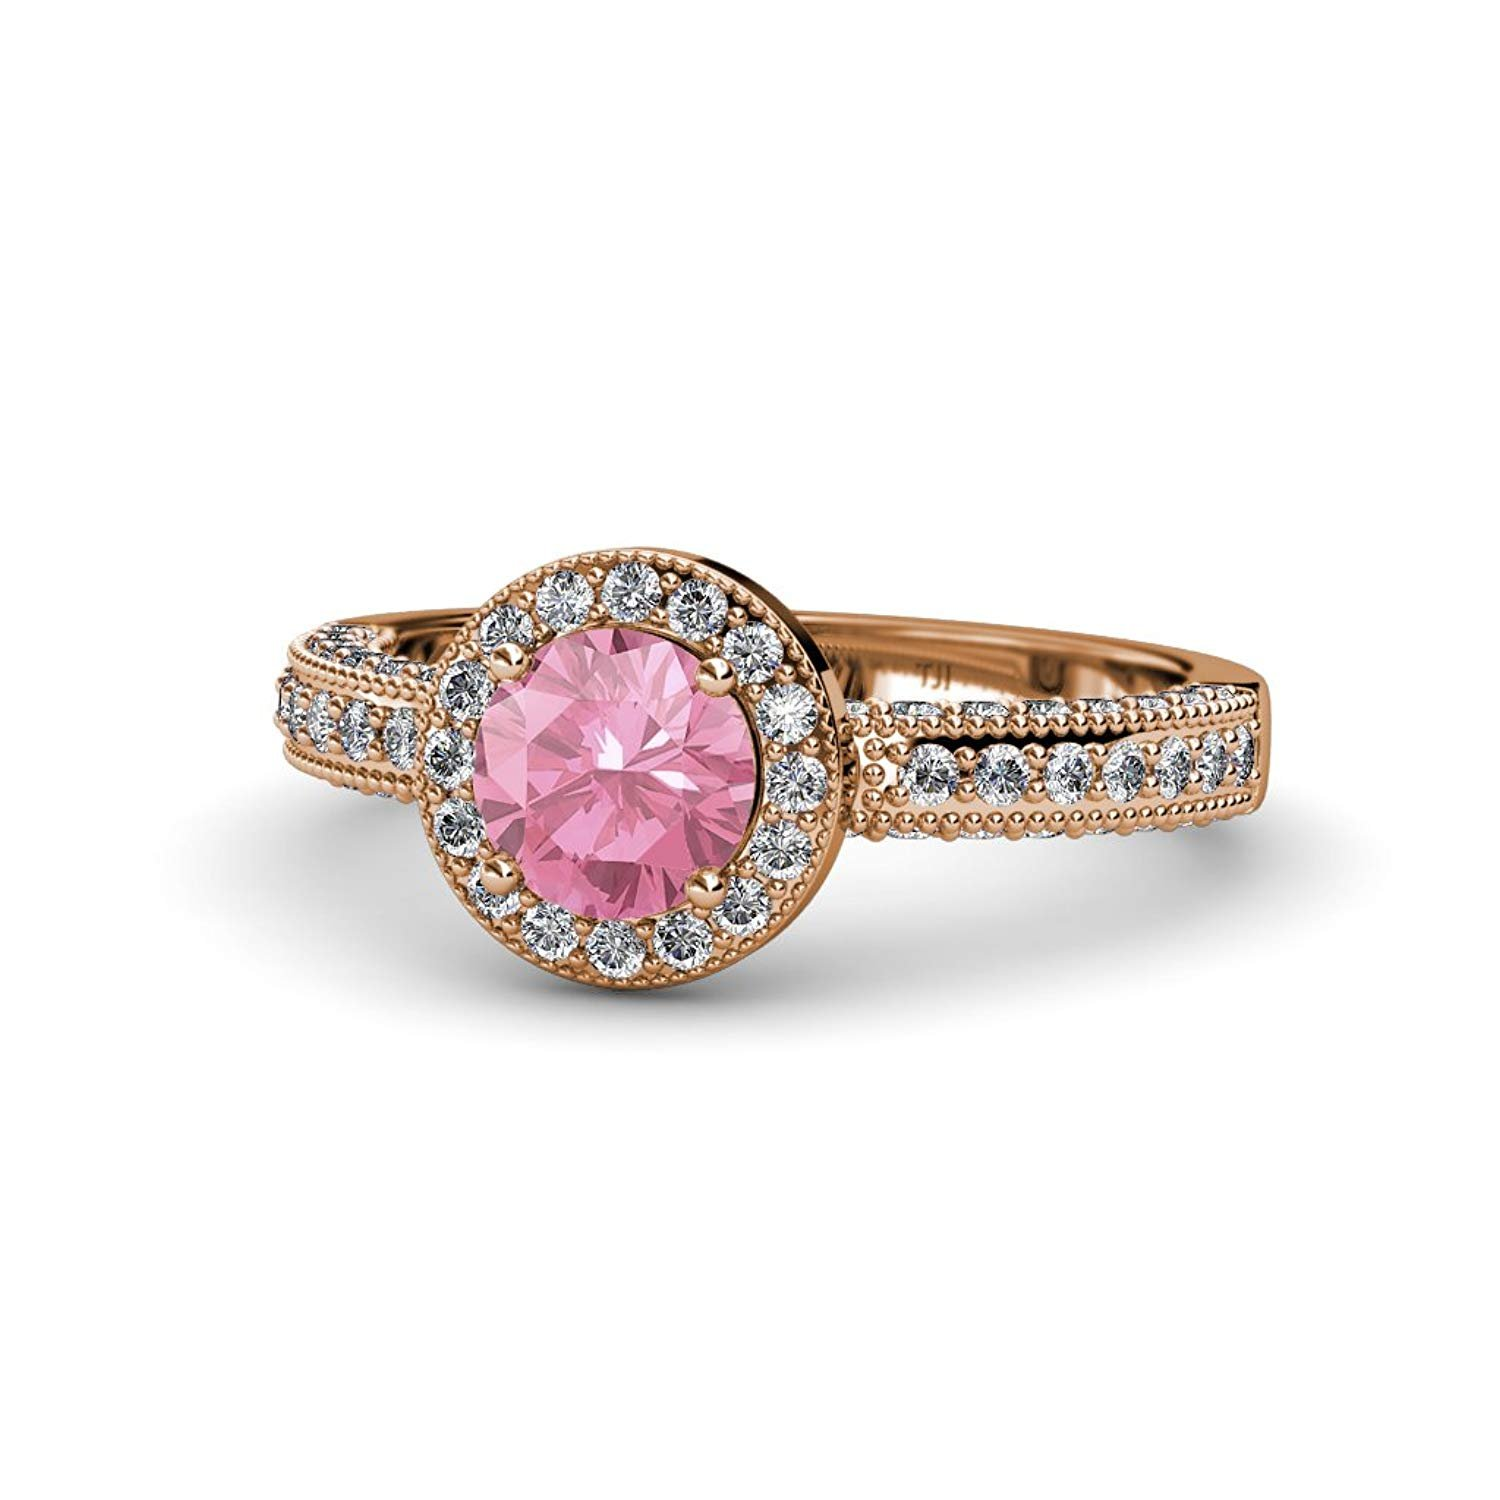 Pink Tourmaline and Diamond Halo Engagement Ring with Milgrain Work 1.54 ct tw 14K Rose Gold.size 8.5 by TriJewels